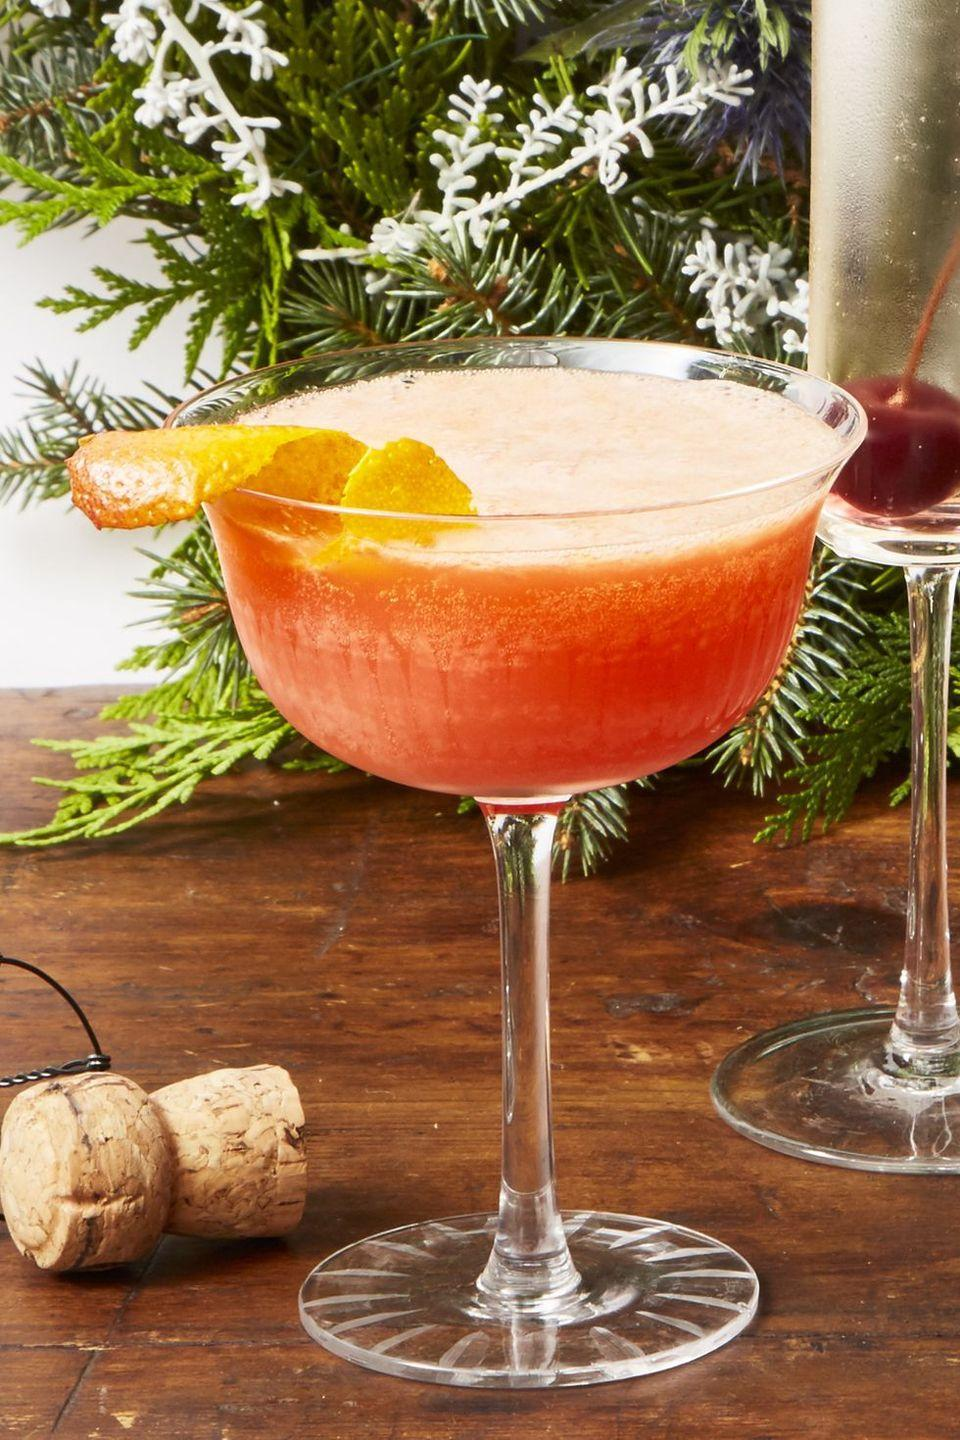 """<p>This light winter twist on the classic Aperol spritz combines champagne, Aperol, and blood orange juice for a festive cocktail that's simple enough to make at any party.</p><p><em><a href=""""https://www.goodhousekeeping.com/food-recipes/party-ideas/a25310897/blood-orange-spritz-recipe/"""" rel=""""nofollow noopener"""" target=""""_blank"""" data-ylk=""""slk:Get the recipe for Blood Orange Spritz »"""" class=""""link rapid-noclick-resp"""">Get the recipe for Blood Orange Spritz »</a></em></p><p><strong>RELATED:</strong> <a href=""""https://www.goodhousekeeping.com/holidays/christmas-ideas/g794/christmas-appetizers/"""" rel=""""nofollow noopener"""" target=""""_blank"""" data-ylk=""""slk:65 Easy Christmas Appetizers To Kick off Your Holiday Feast This Year"""" class=""""link rapid-noclick-resp"""">65 Easy Christmas Appetizers To Kick off Your Holiday Feast This Year</a></p>"""